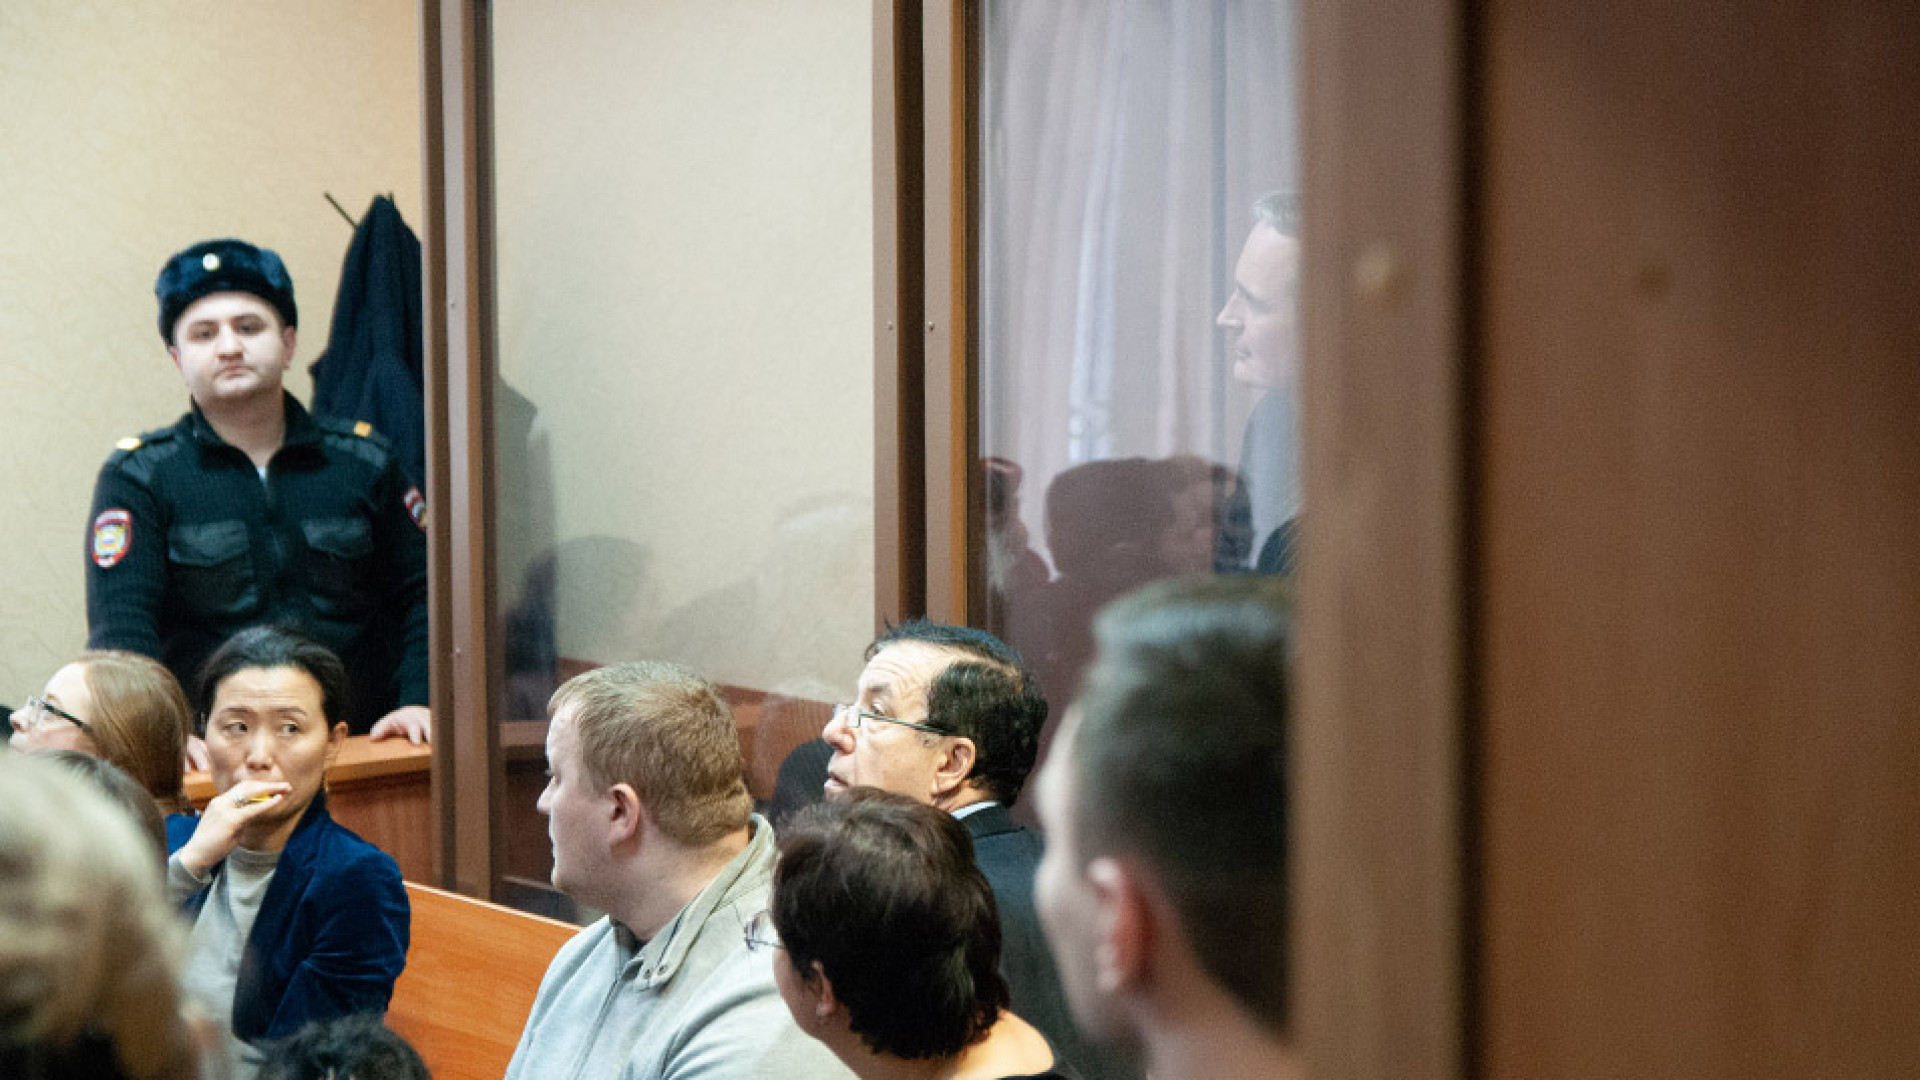 Russian Court Convicts Danish Jehovah's Witness to 6 Years for